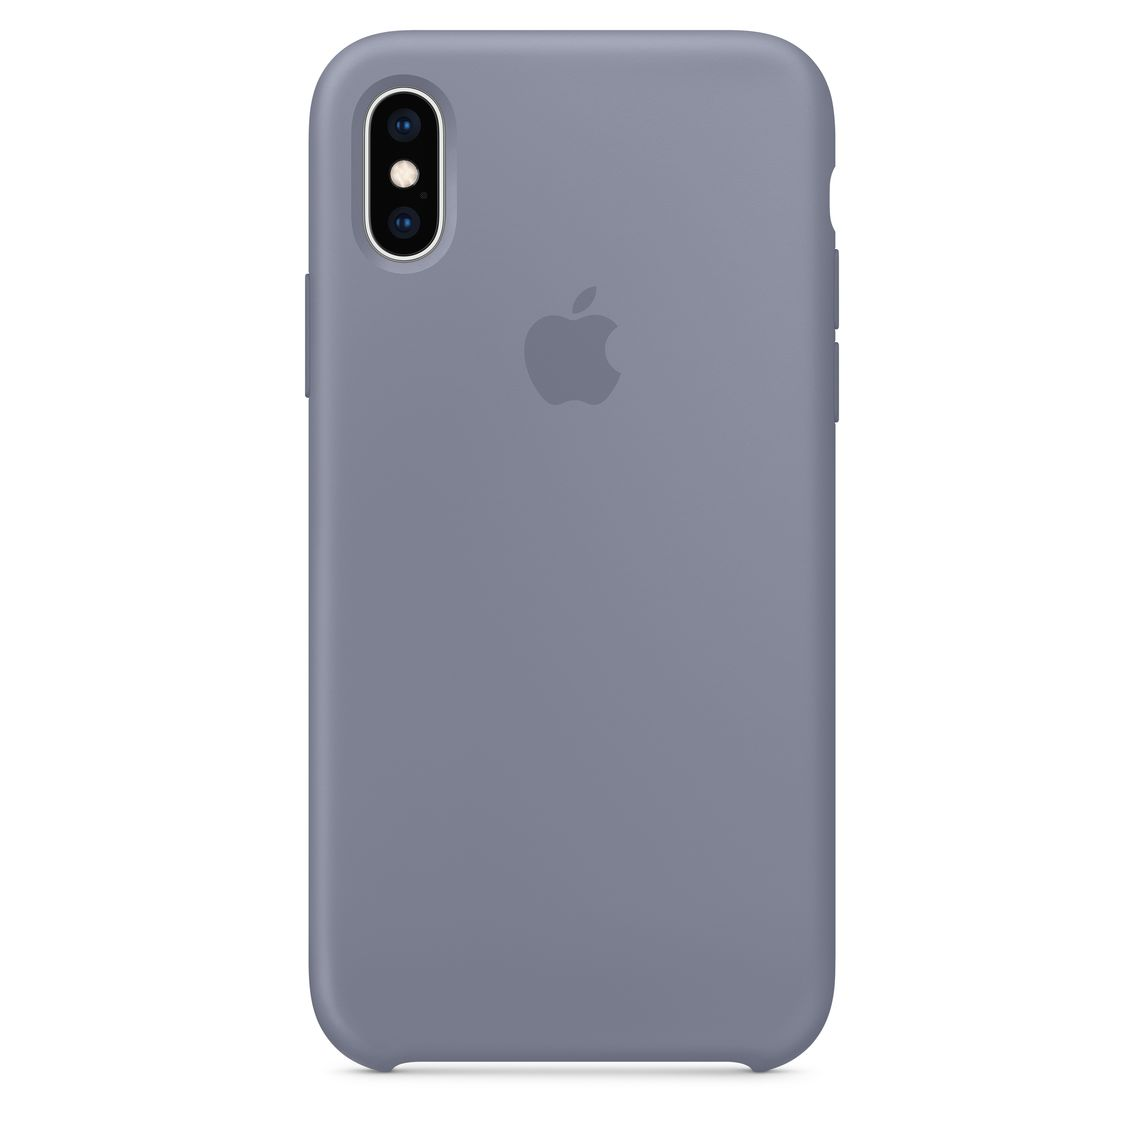 promo code 75703 22f28 iPhone XS Silicone Case - Lavender Grey